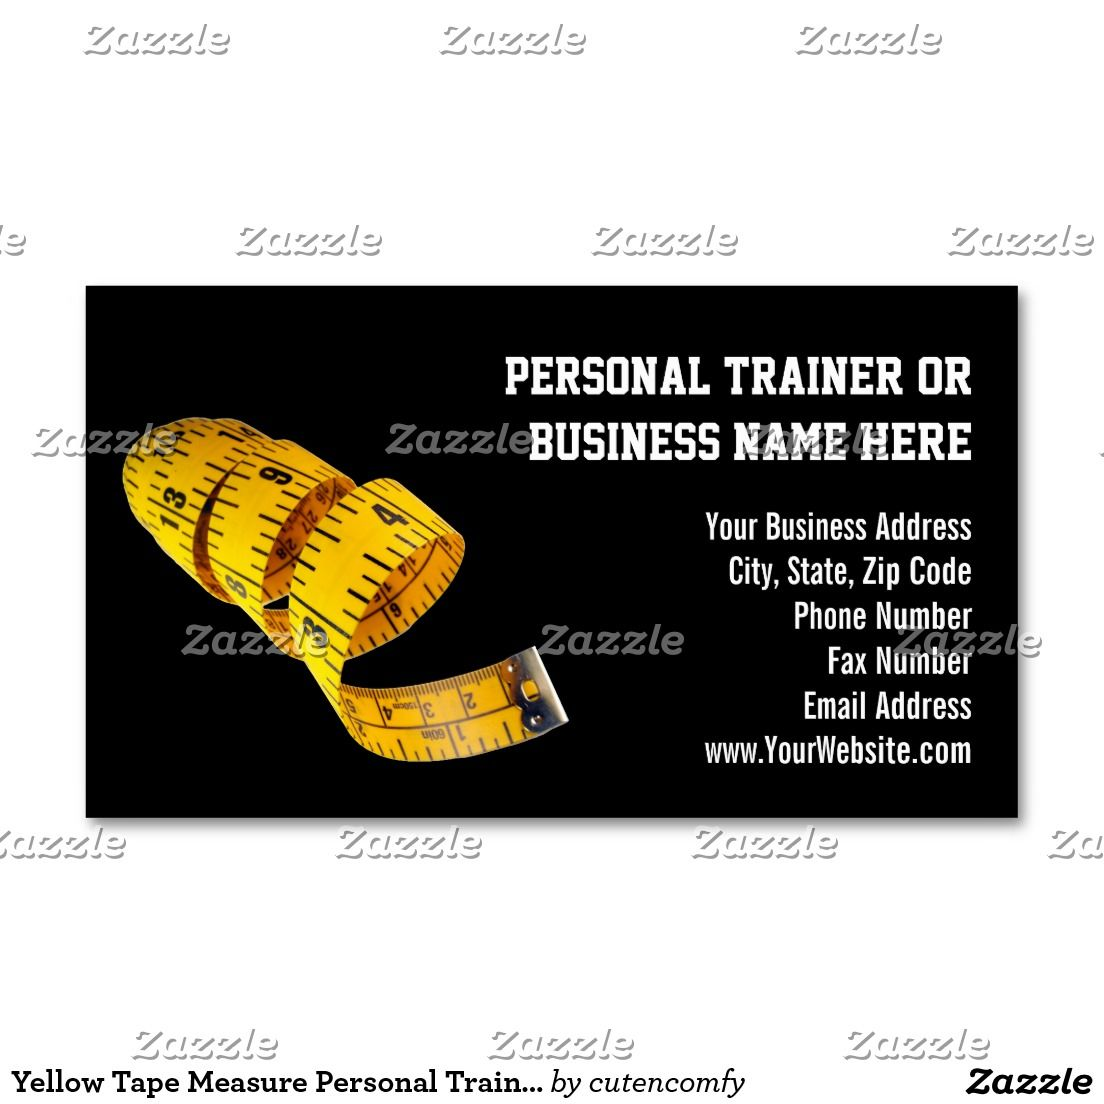 Yellow tape measure personal trainer weight loss business card yellow tape measure personal trainer weight loss business card colourmoves